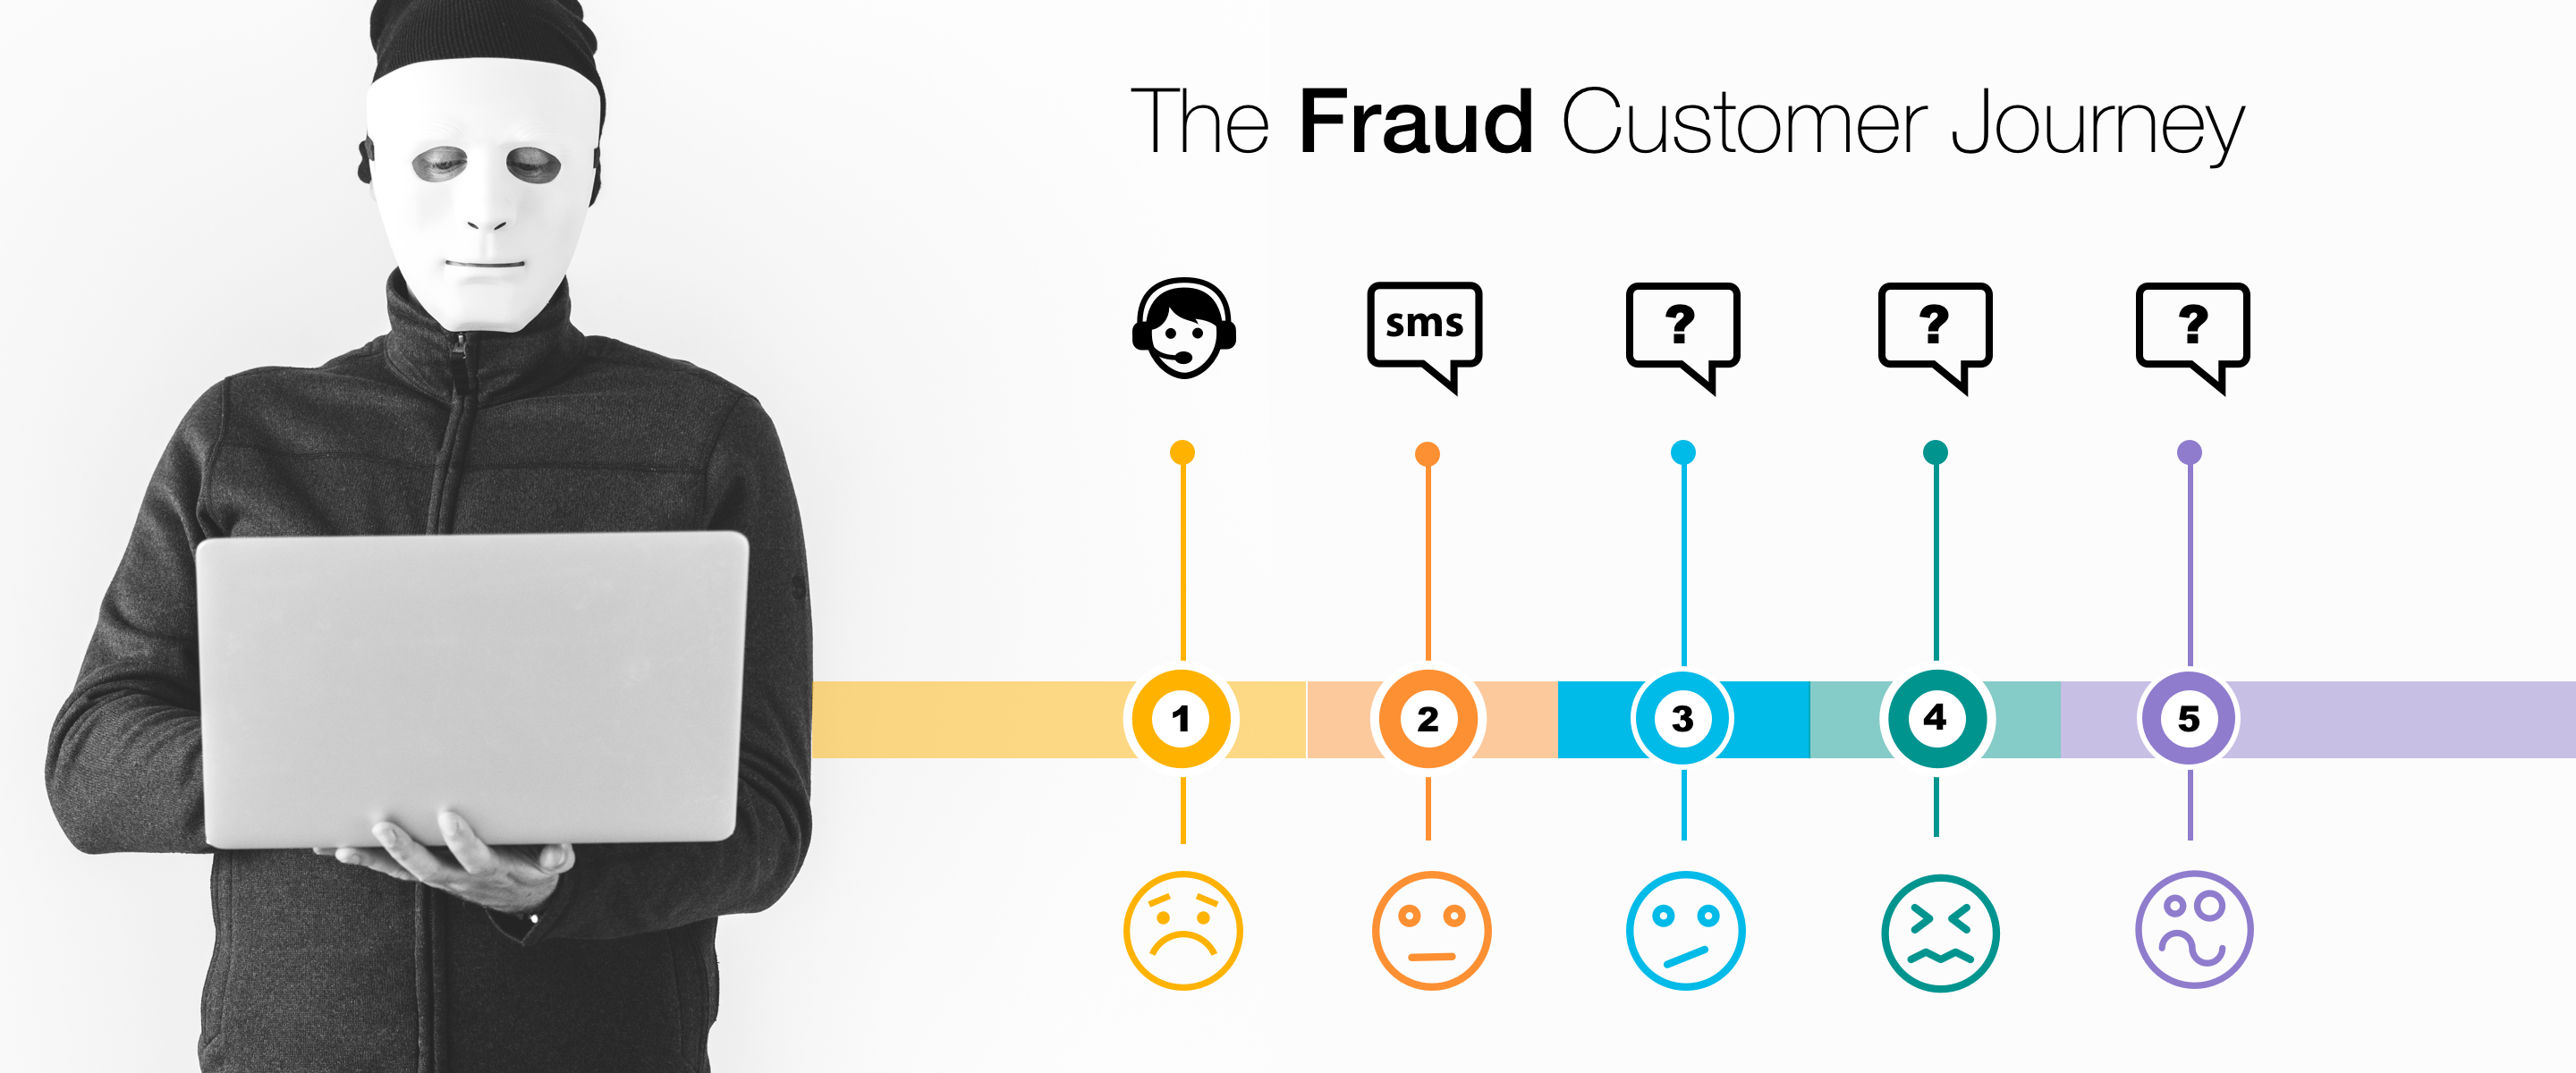 The Fraud Customer Journey A Ux Case Study By Marli Ritter Ux Collective